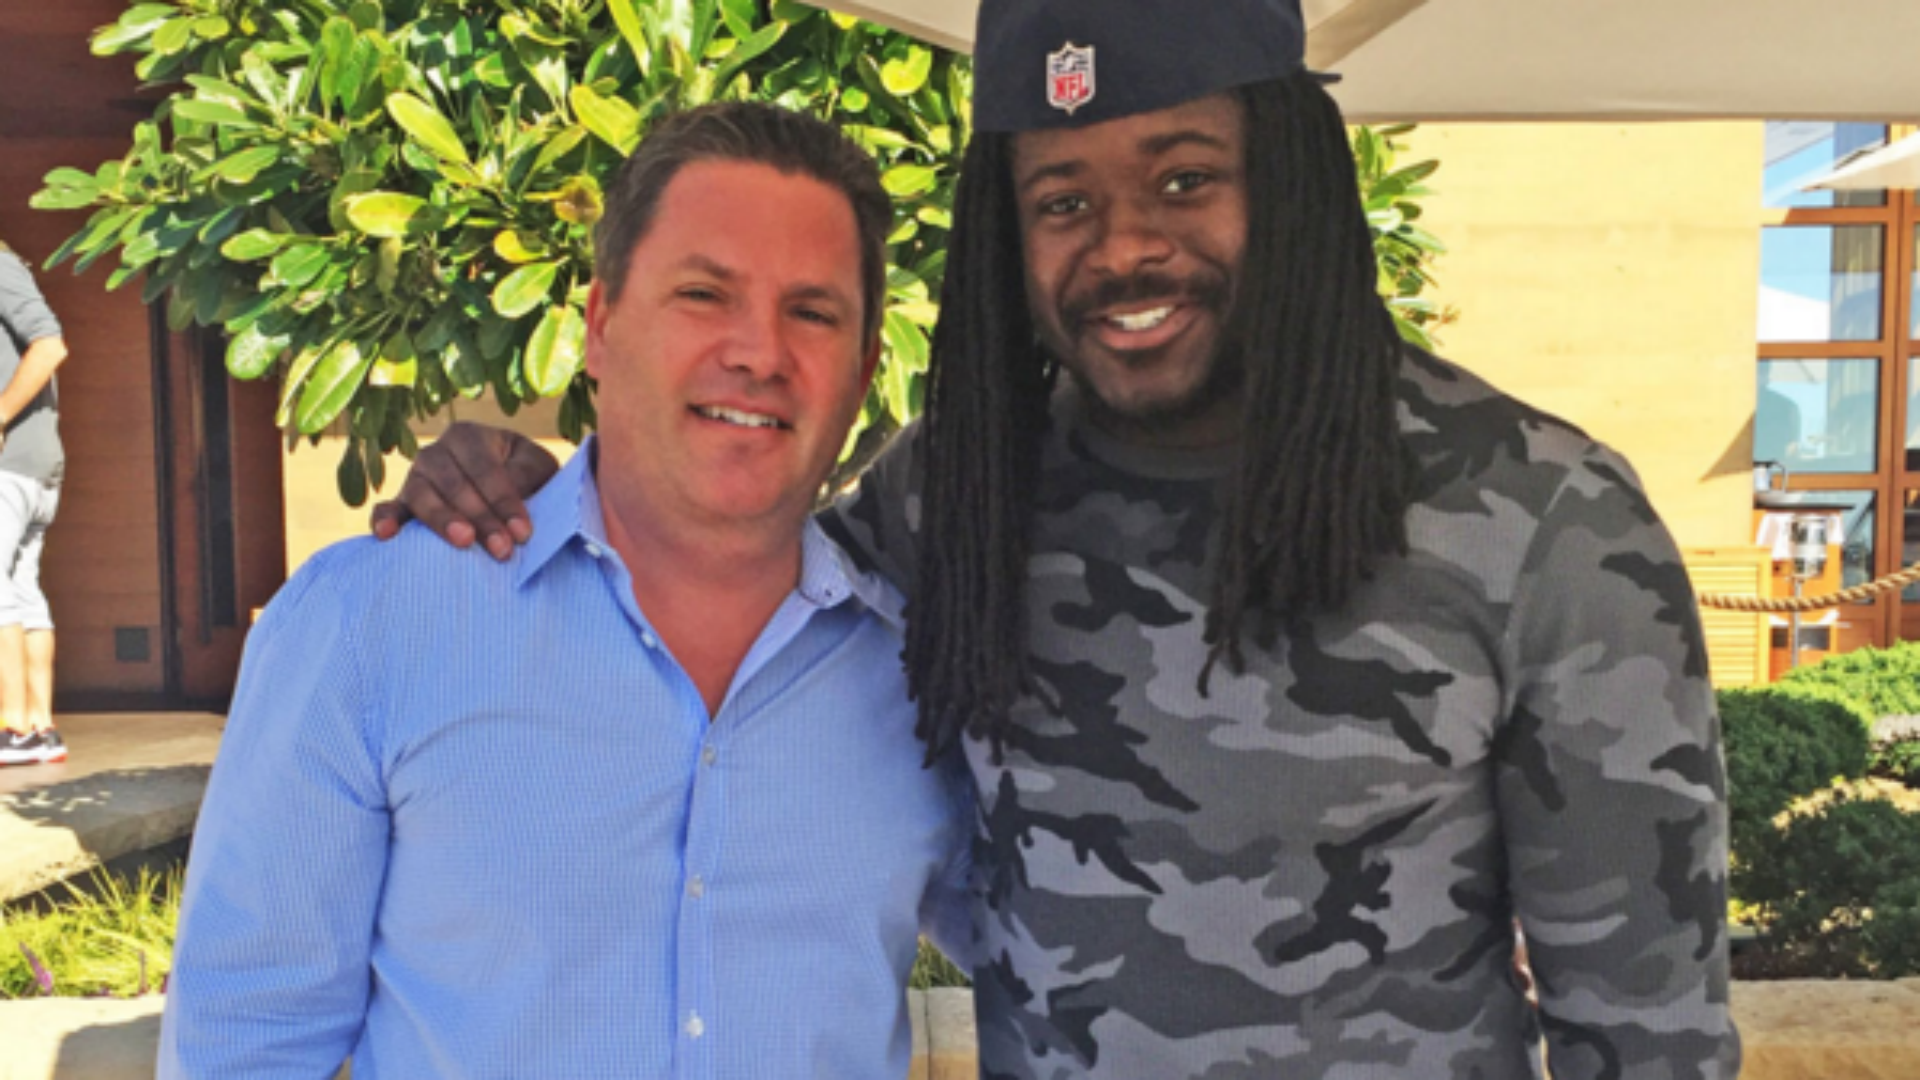 Eddie Lacy's latest weight loss photo should make the Packers happy